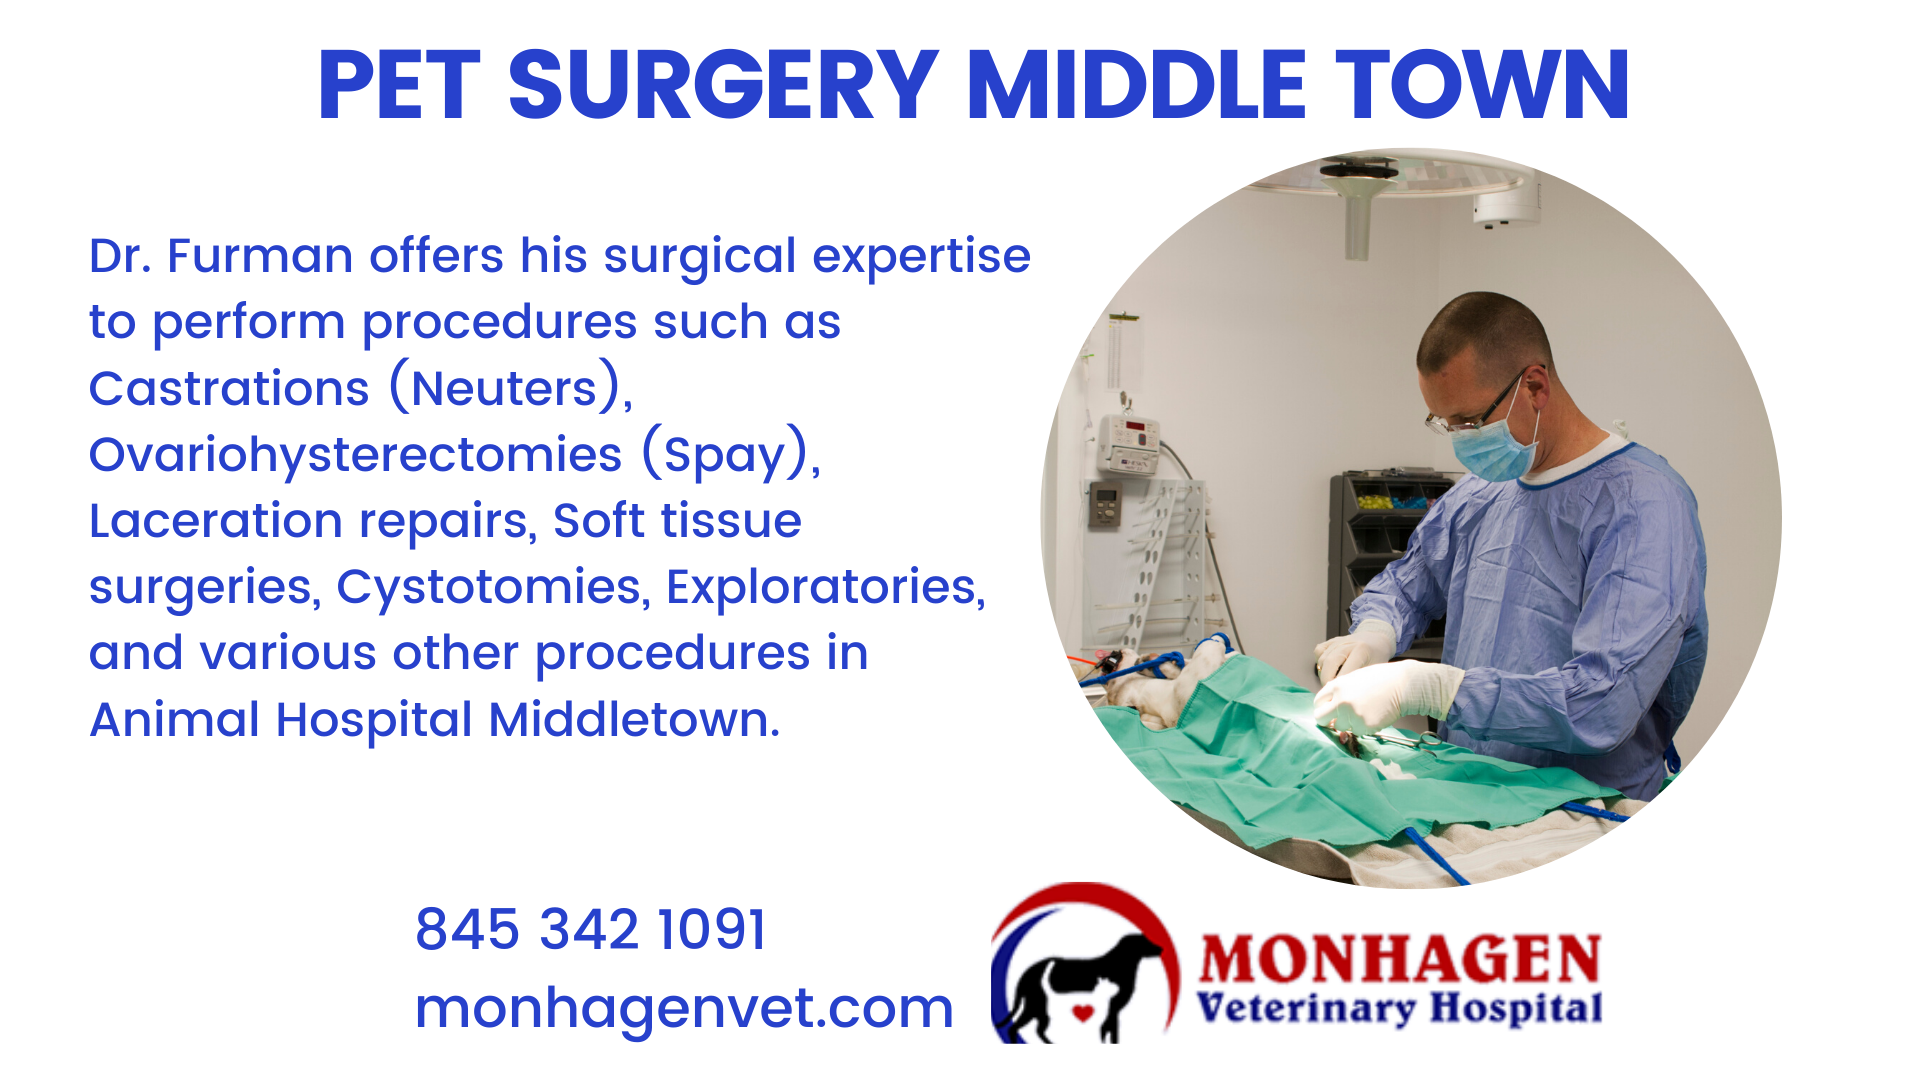 Pet Surgery Animal Hospital Middletown In 2020 Animal Hospital Pet Vet Cat Vet